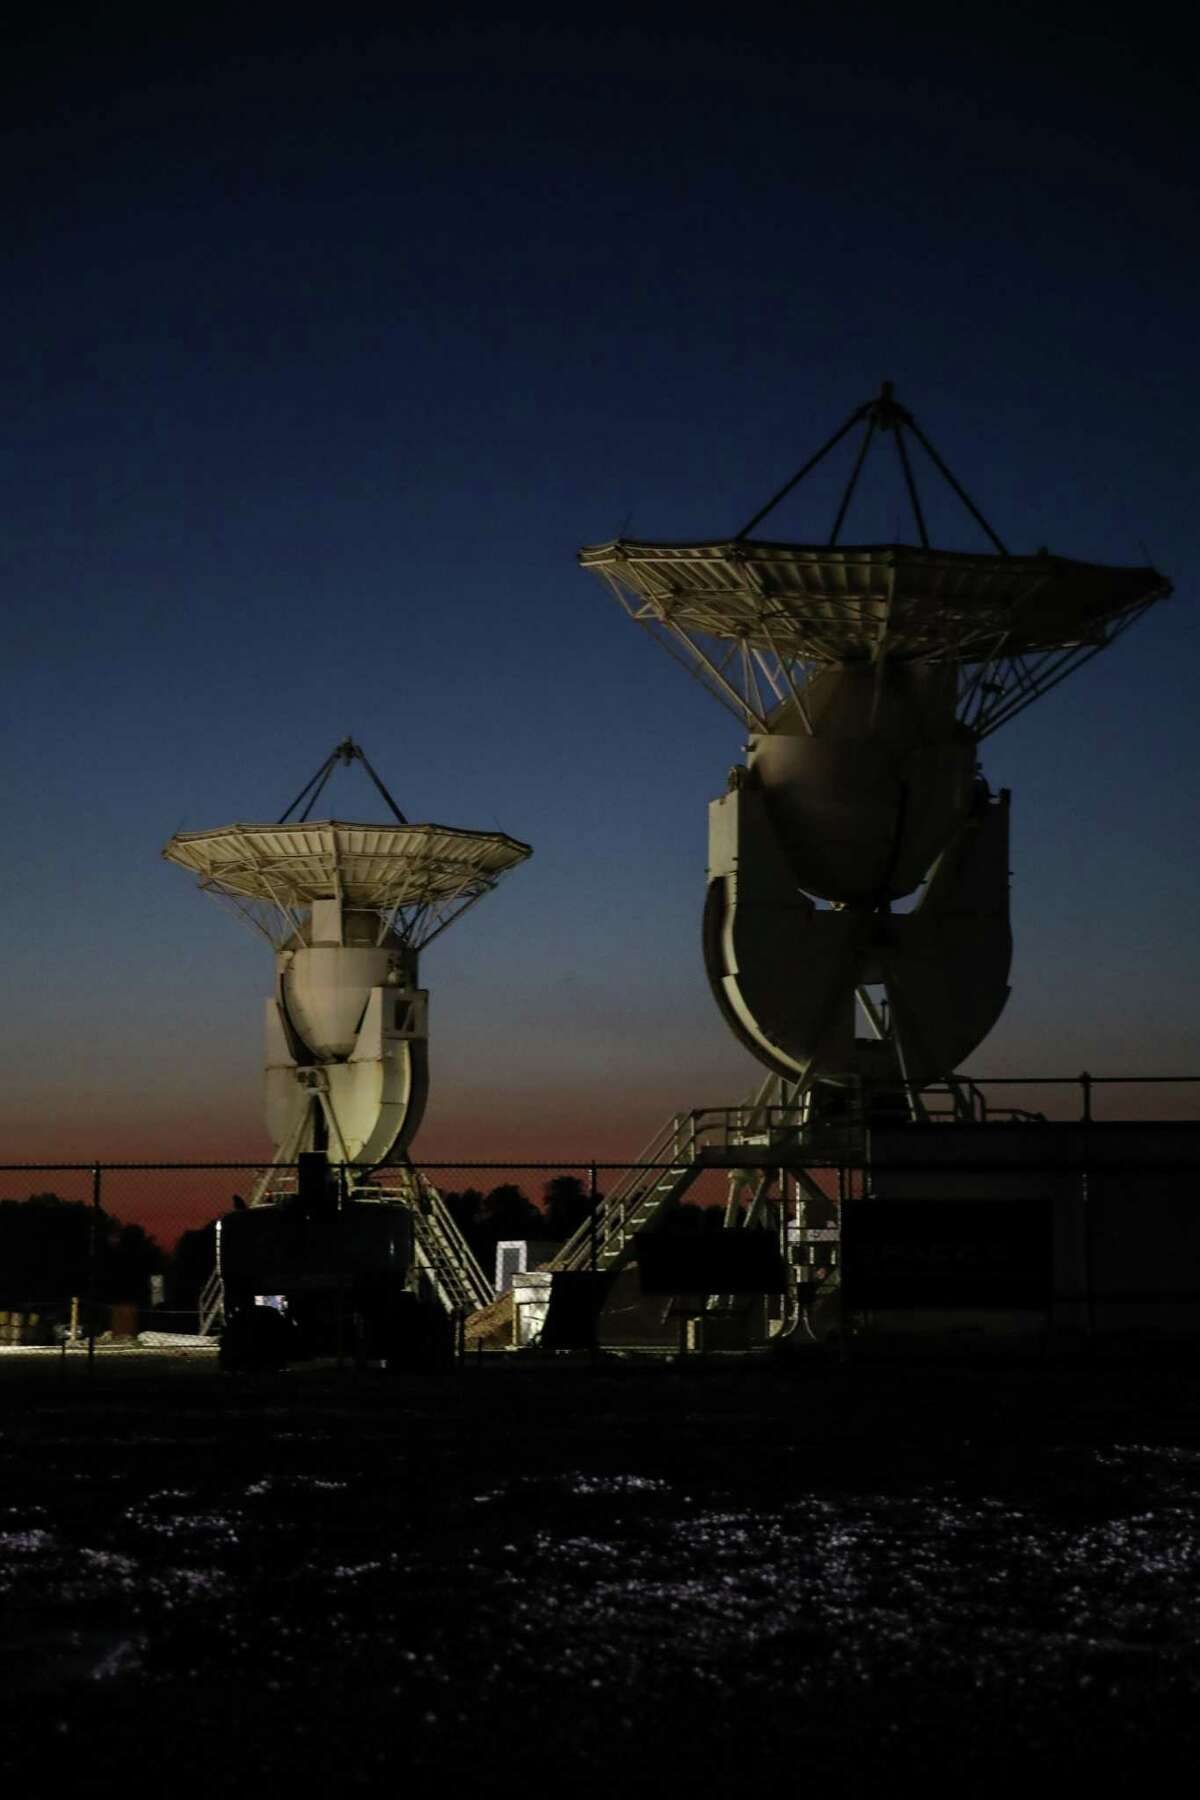 Communications equipment aims towards the sky at the SpaceX South Texas Tracking Station on Monday, June 14, 2021, in Boca Chica, an unincorporated area near Brownsville.